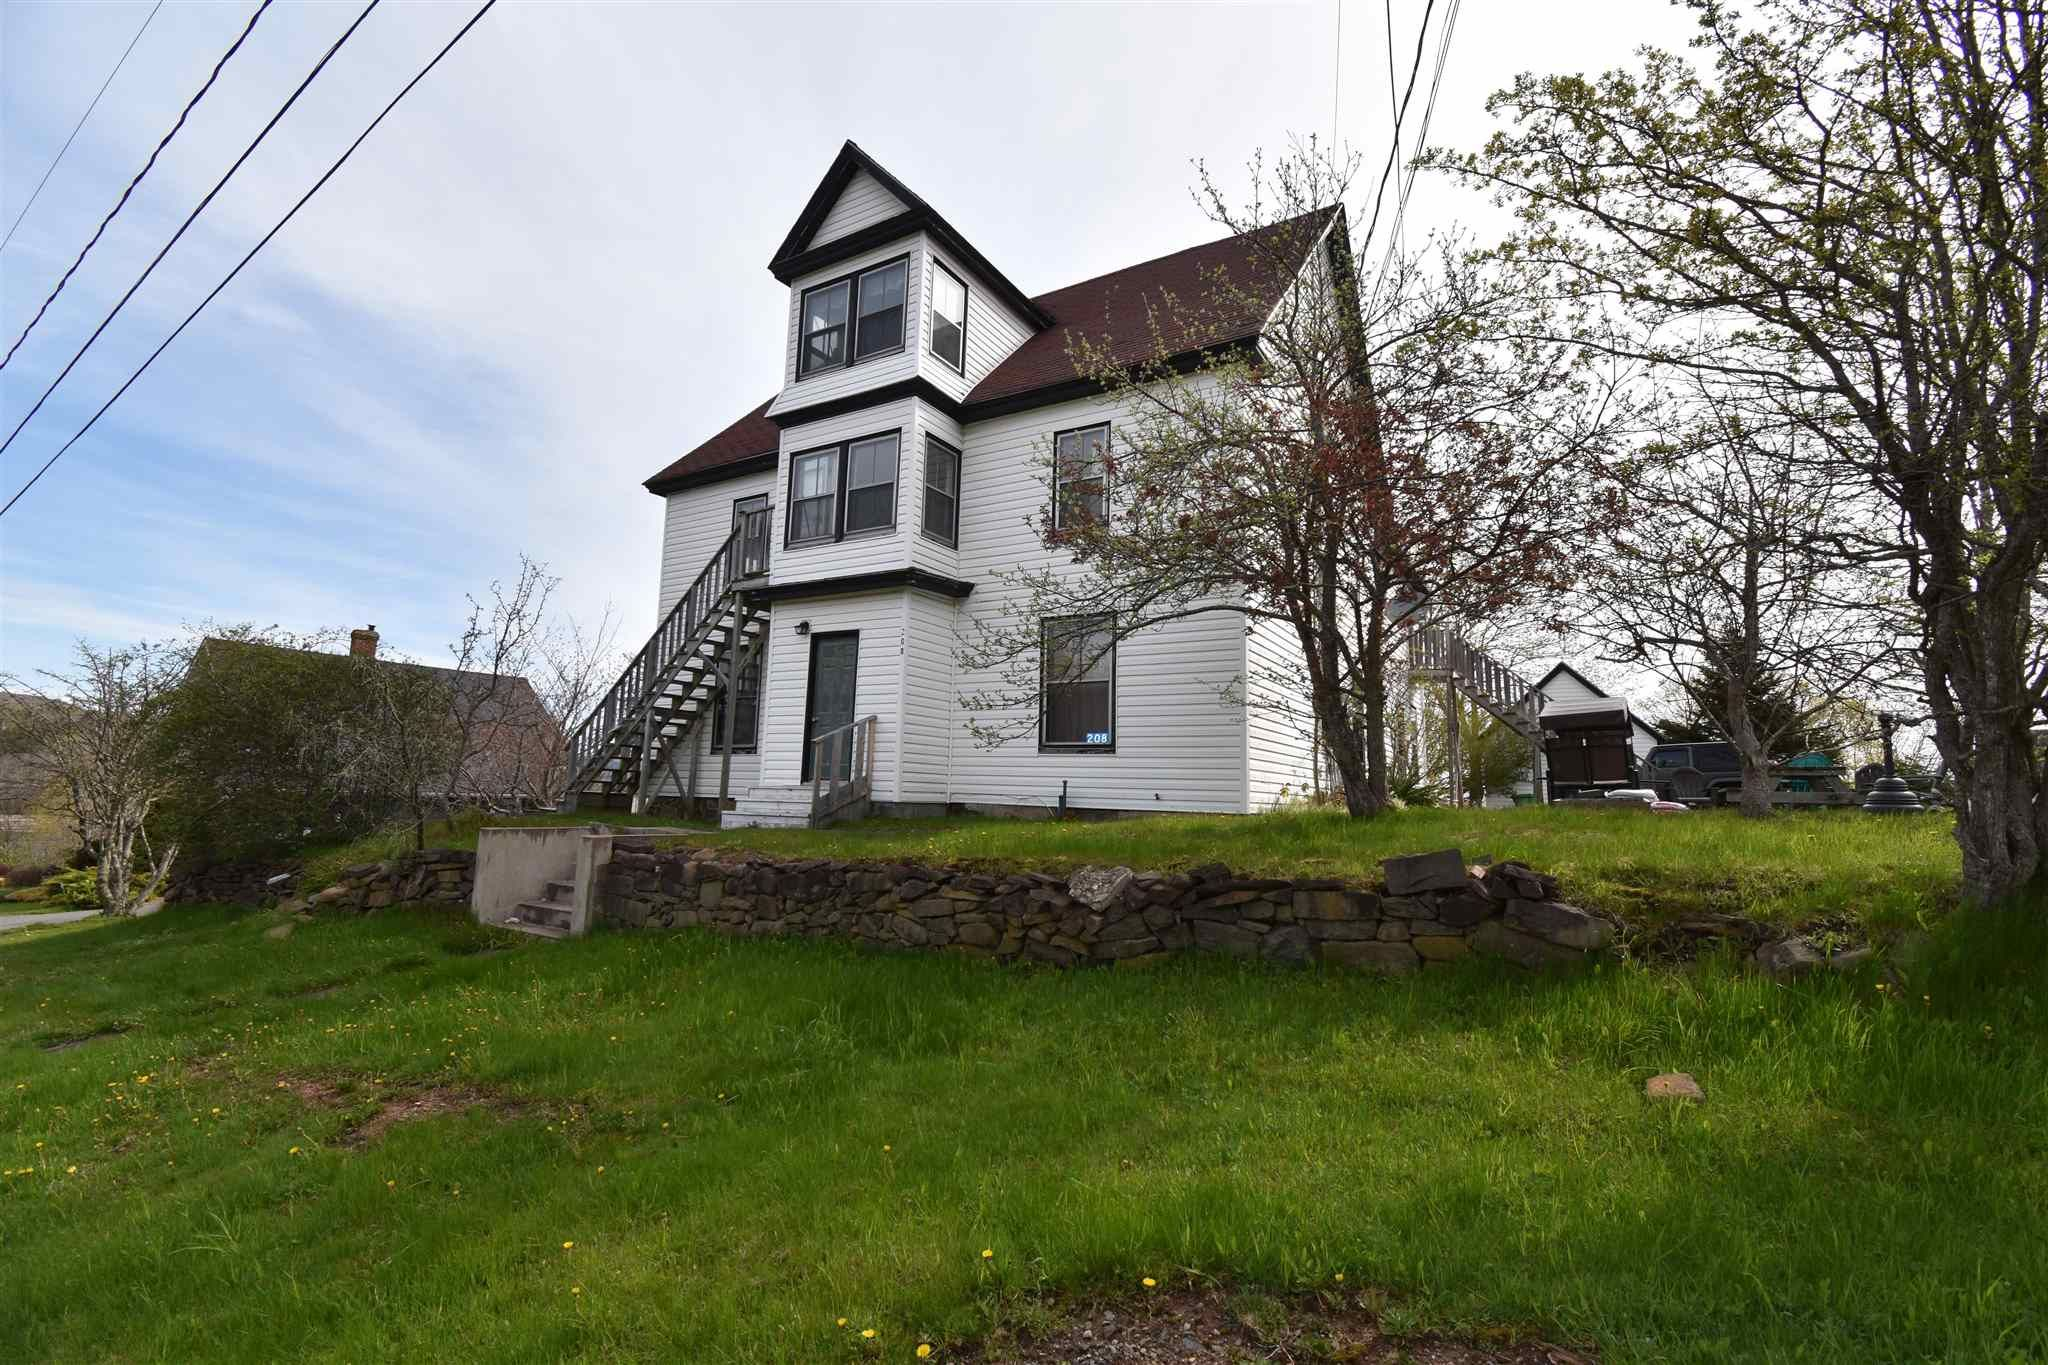 Main Photo: 208 KING STREET in Digby: 401-Digby County Multi-Family for sale (Annapolis Valley)  : MLS®# 202111479